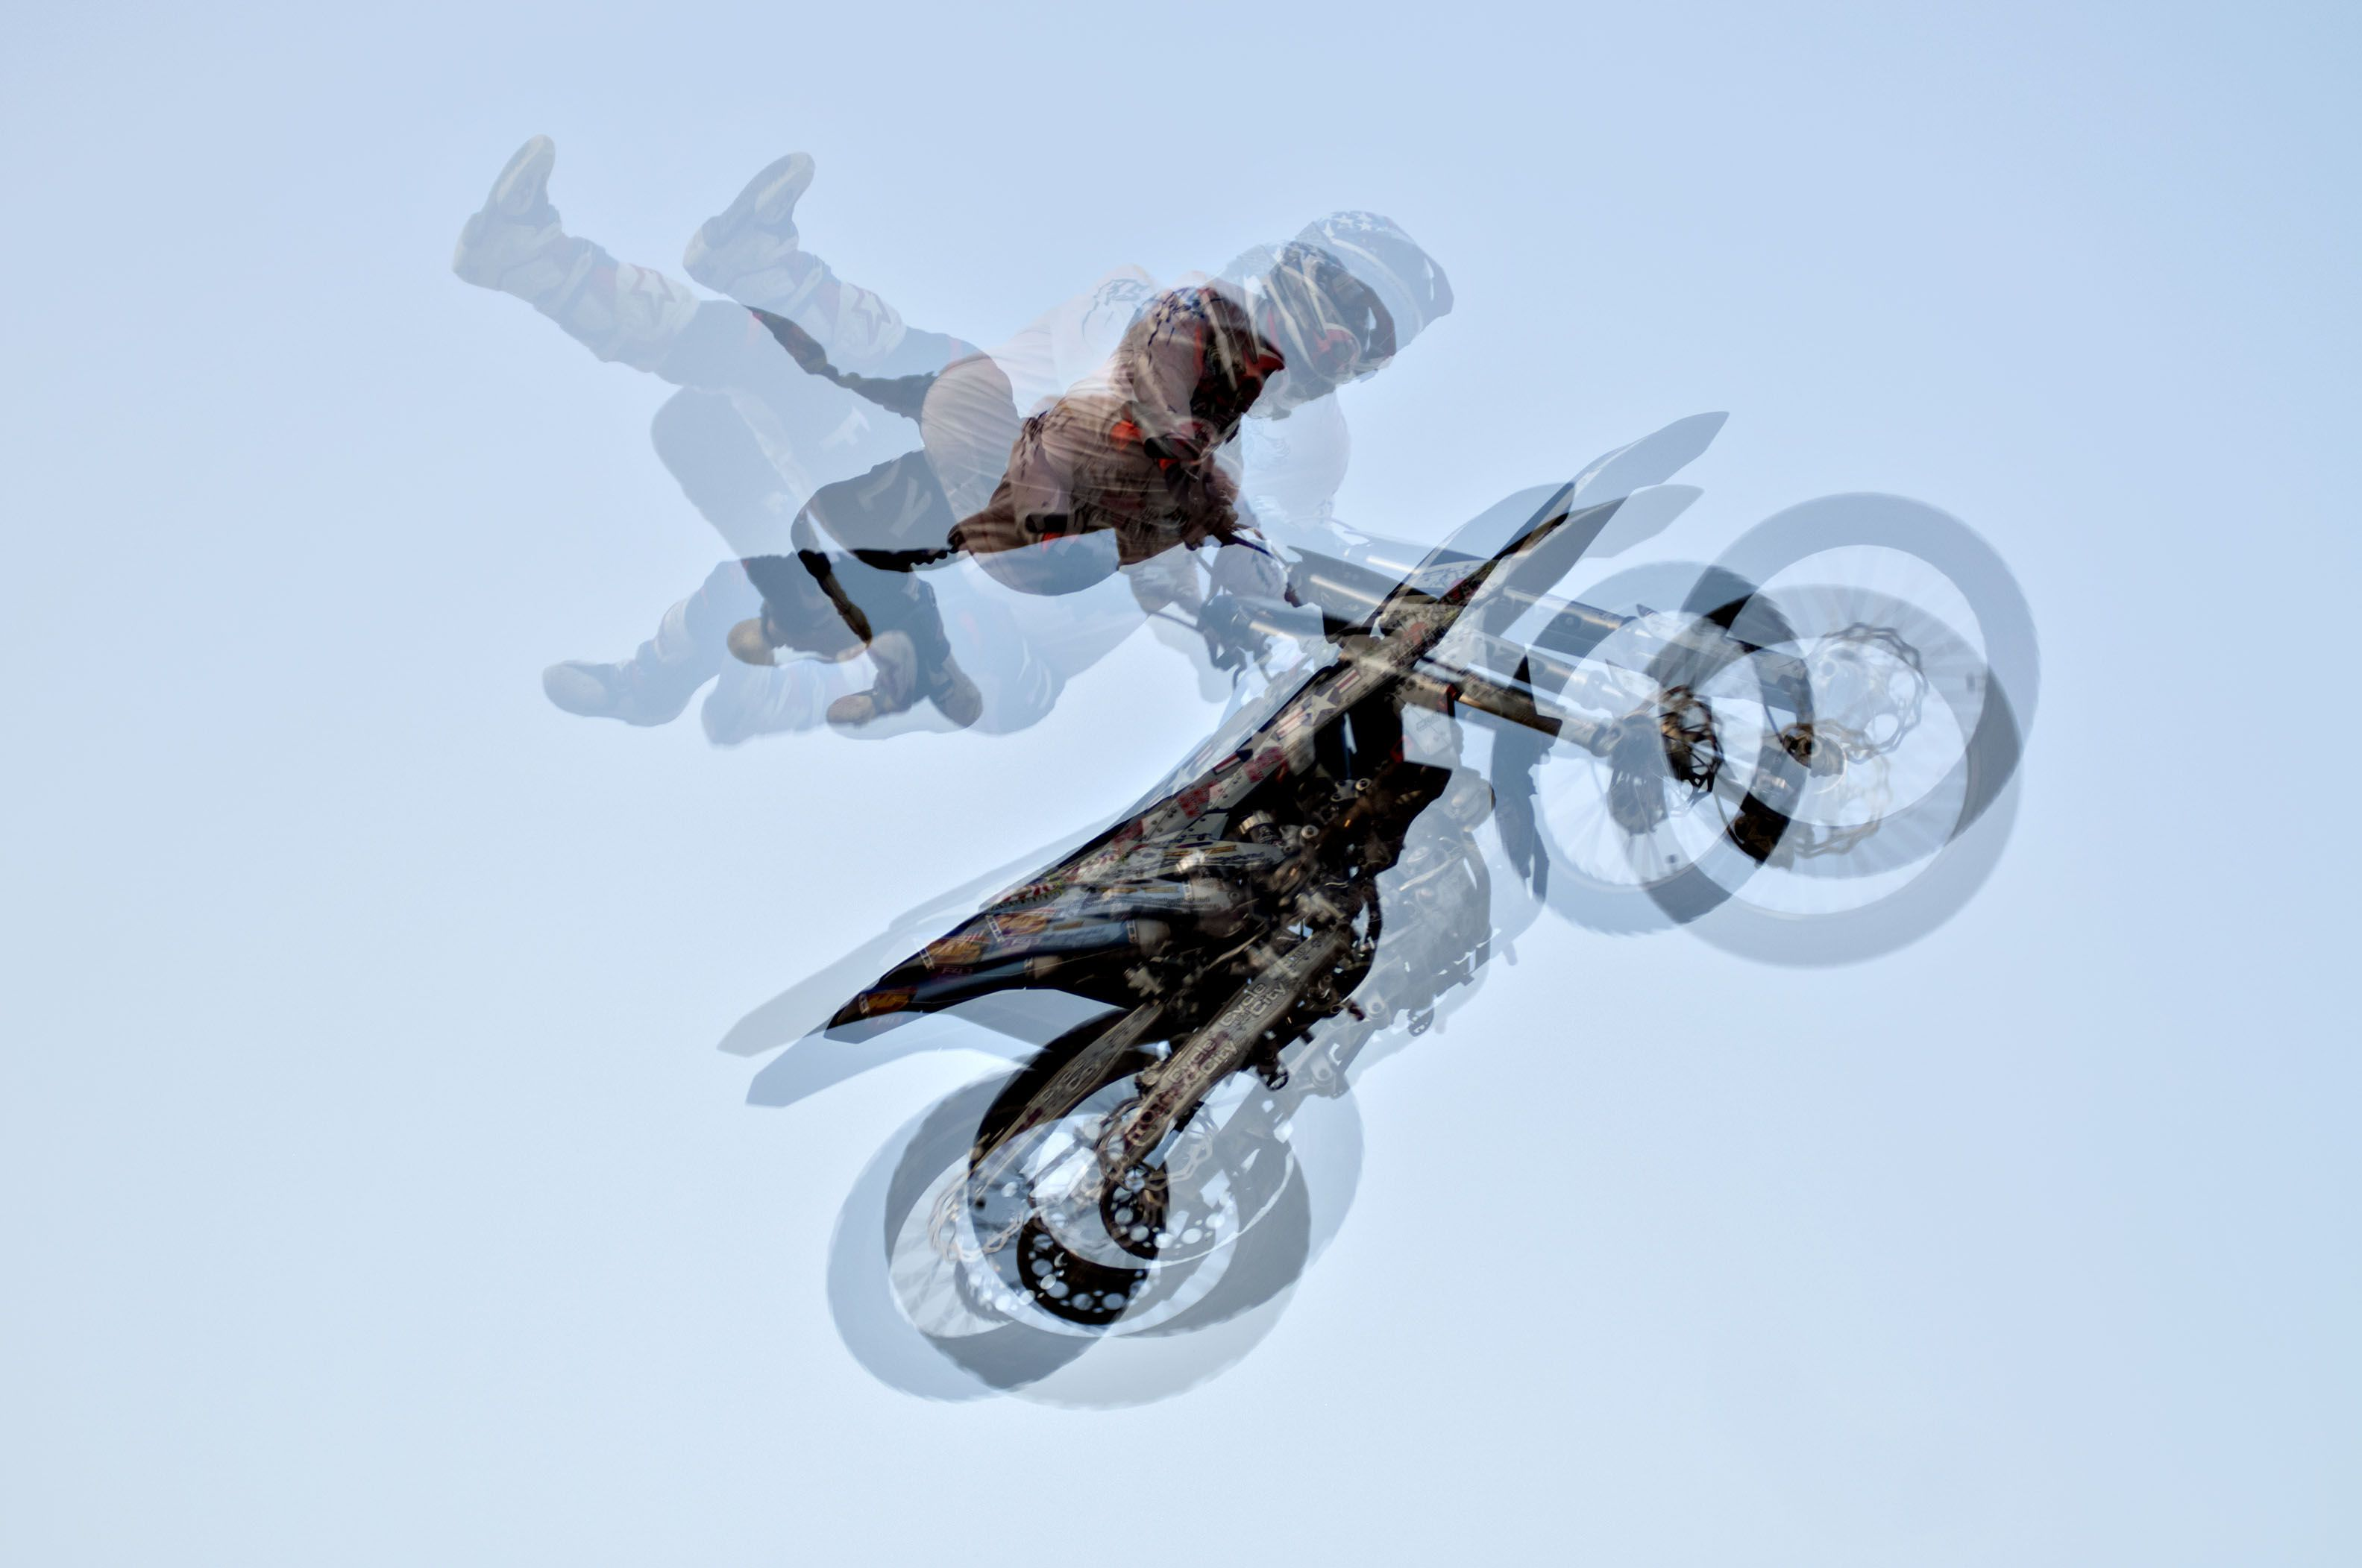 In a multiple exposure image, motocross rider Scott Murray does some aerial acrobats during the Sick Air FMX show at the Whiteside fair.